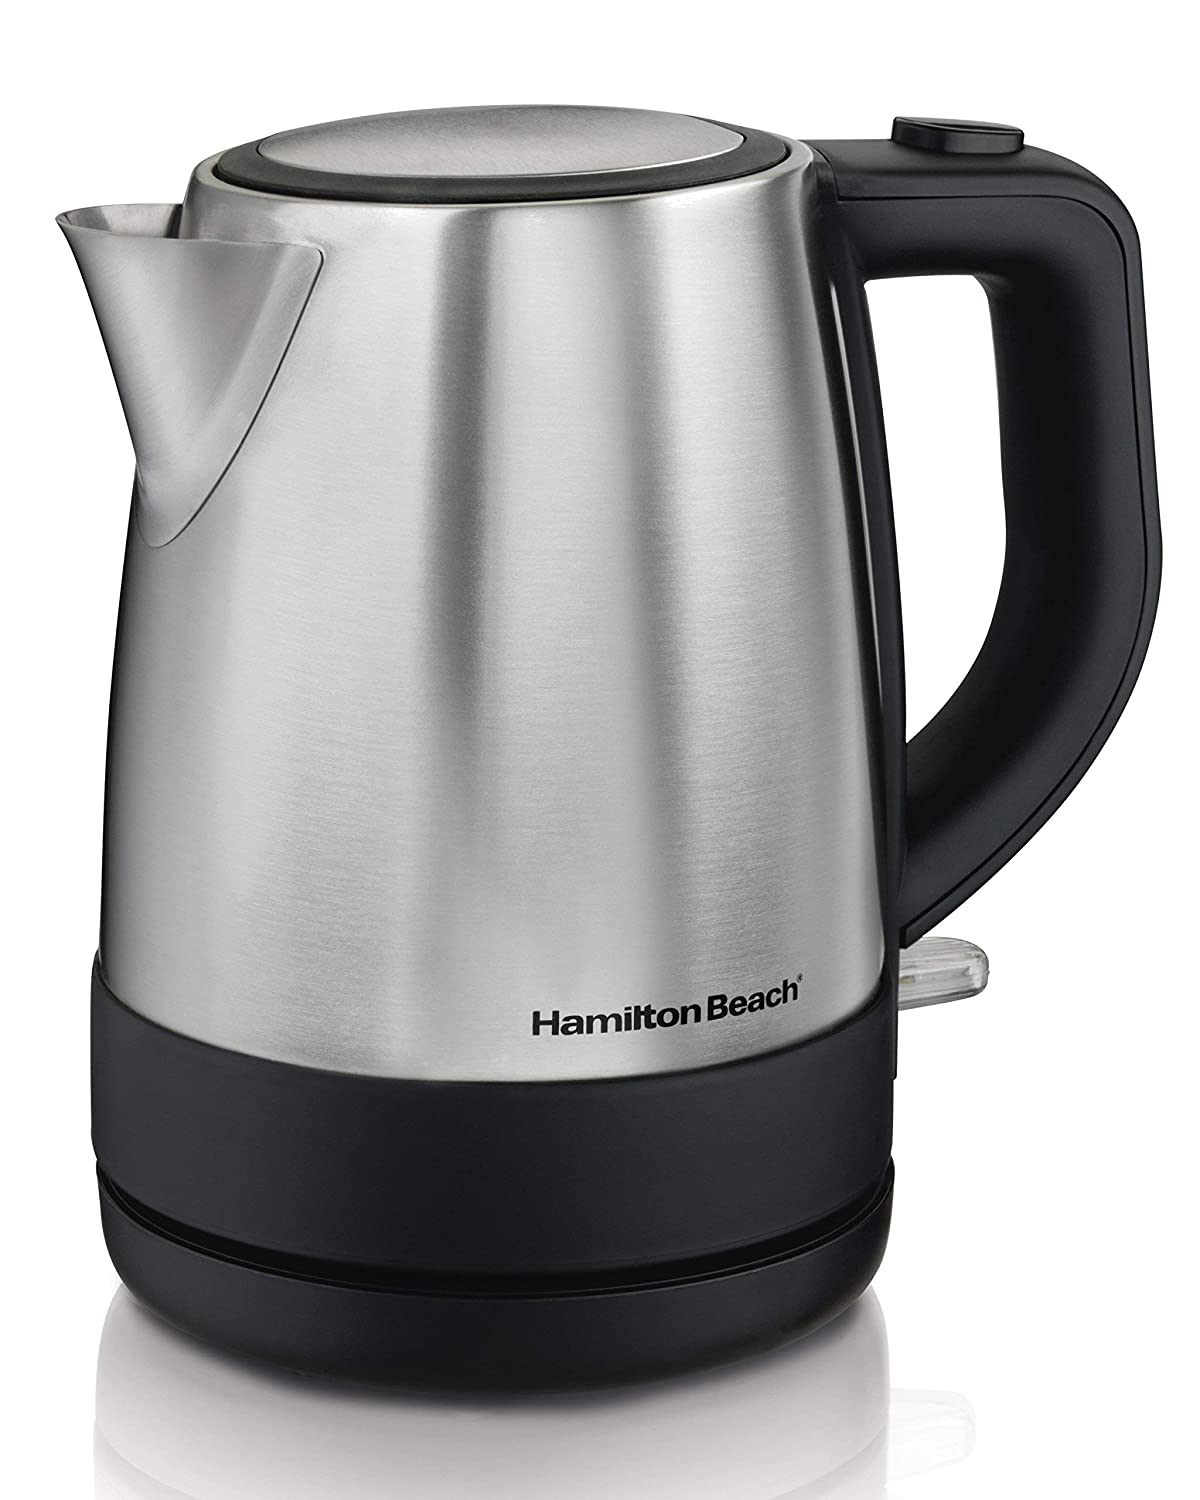 Hamilton Beach 40998 Electric Kettle, 1L, Silver (Certified Refurbished)